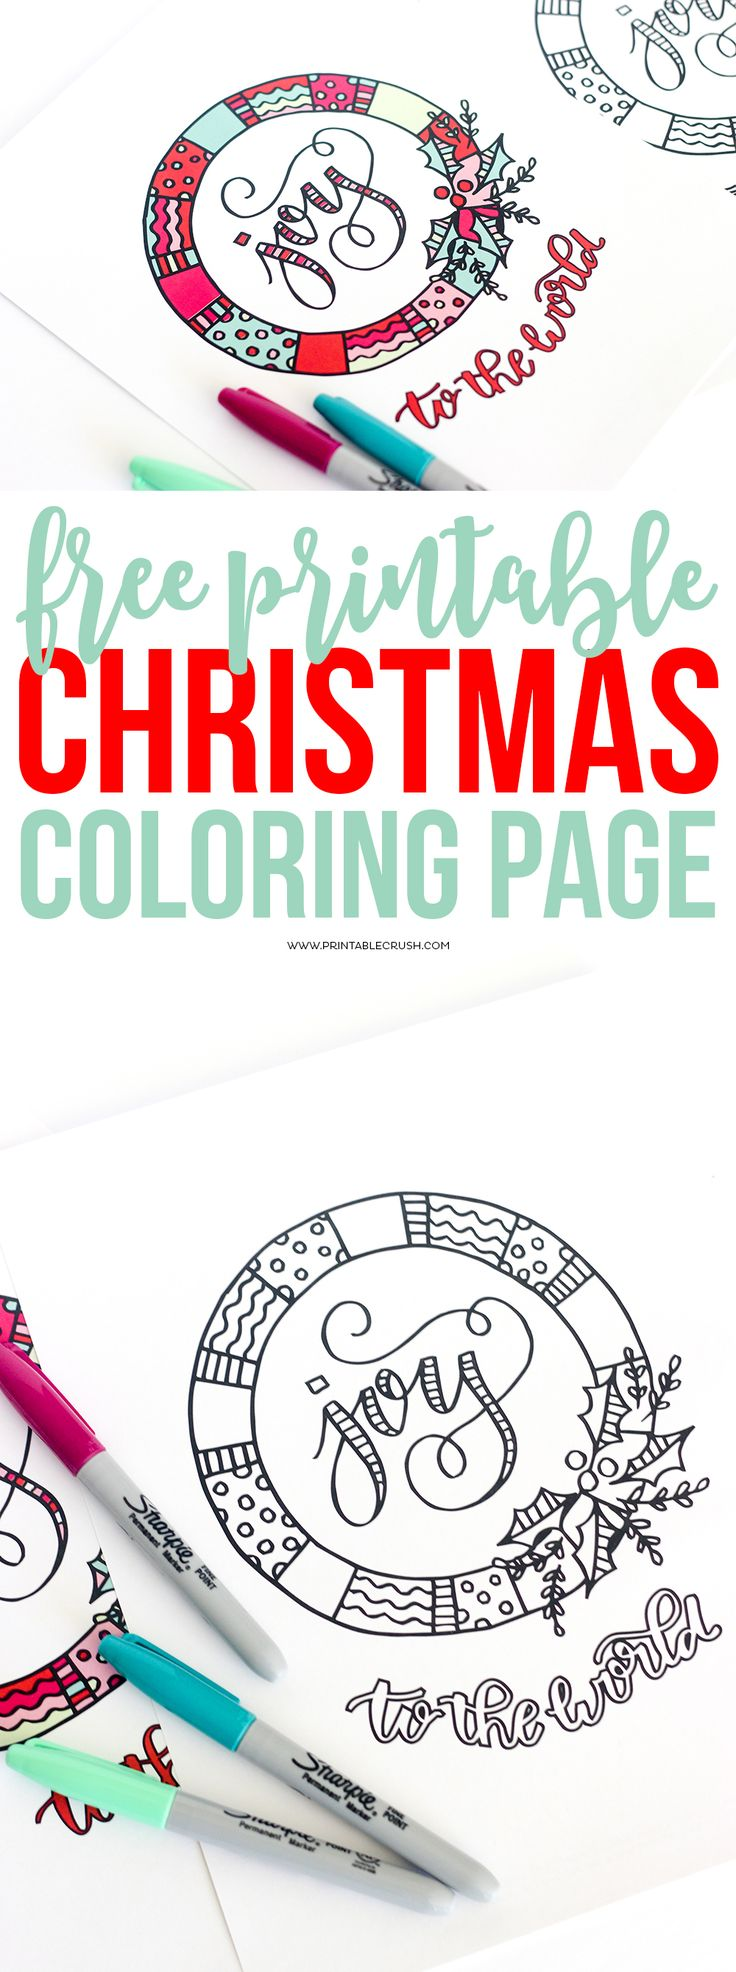 Best 1202 Printable Coloring Pages